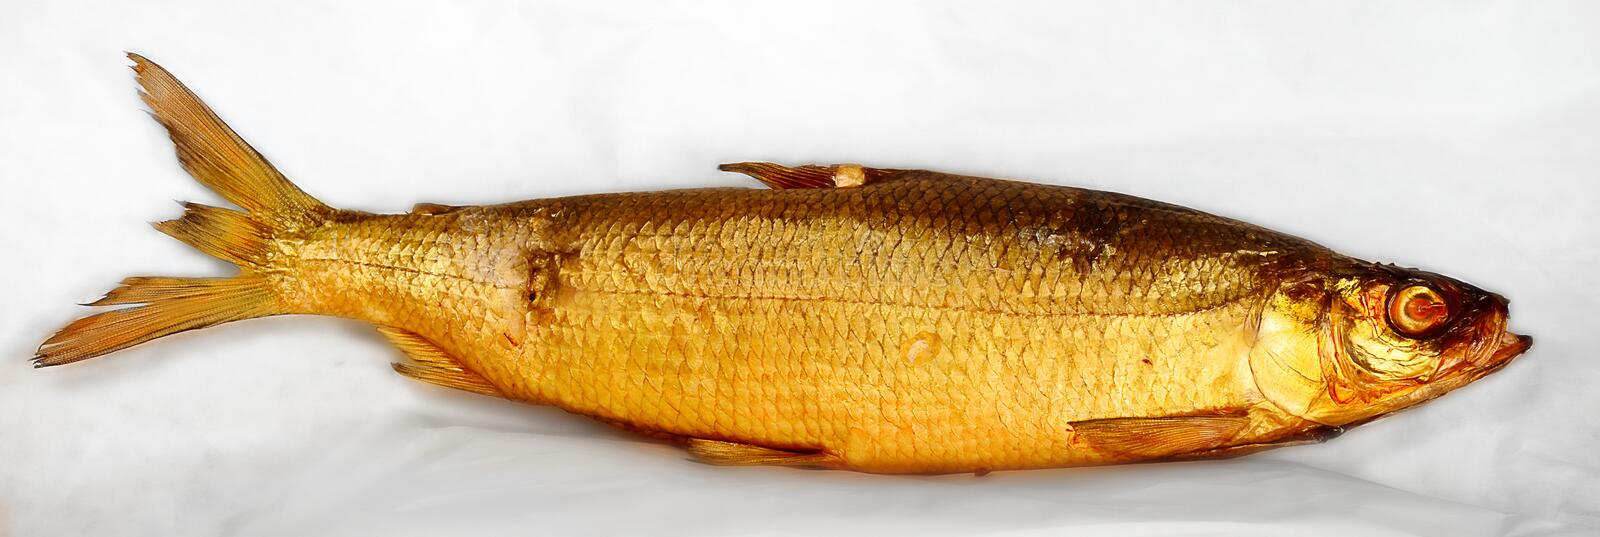 A golden smoked herring on white stock image image of for Smoked herring fish